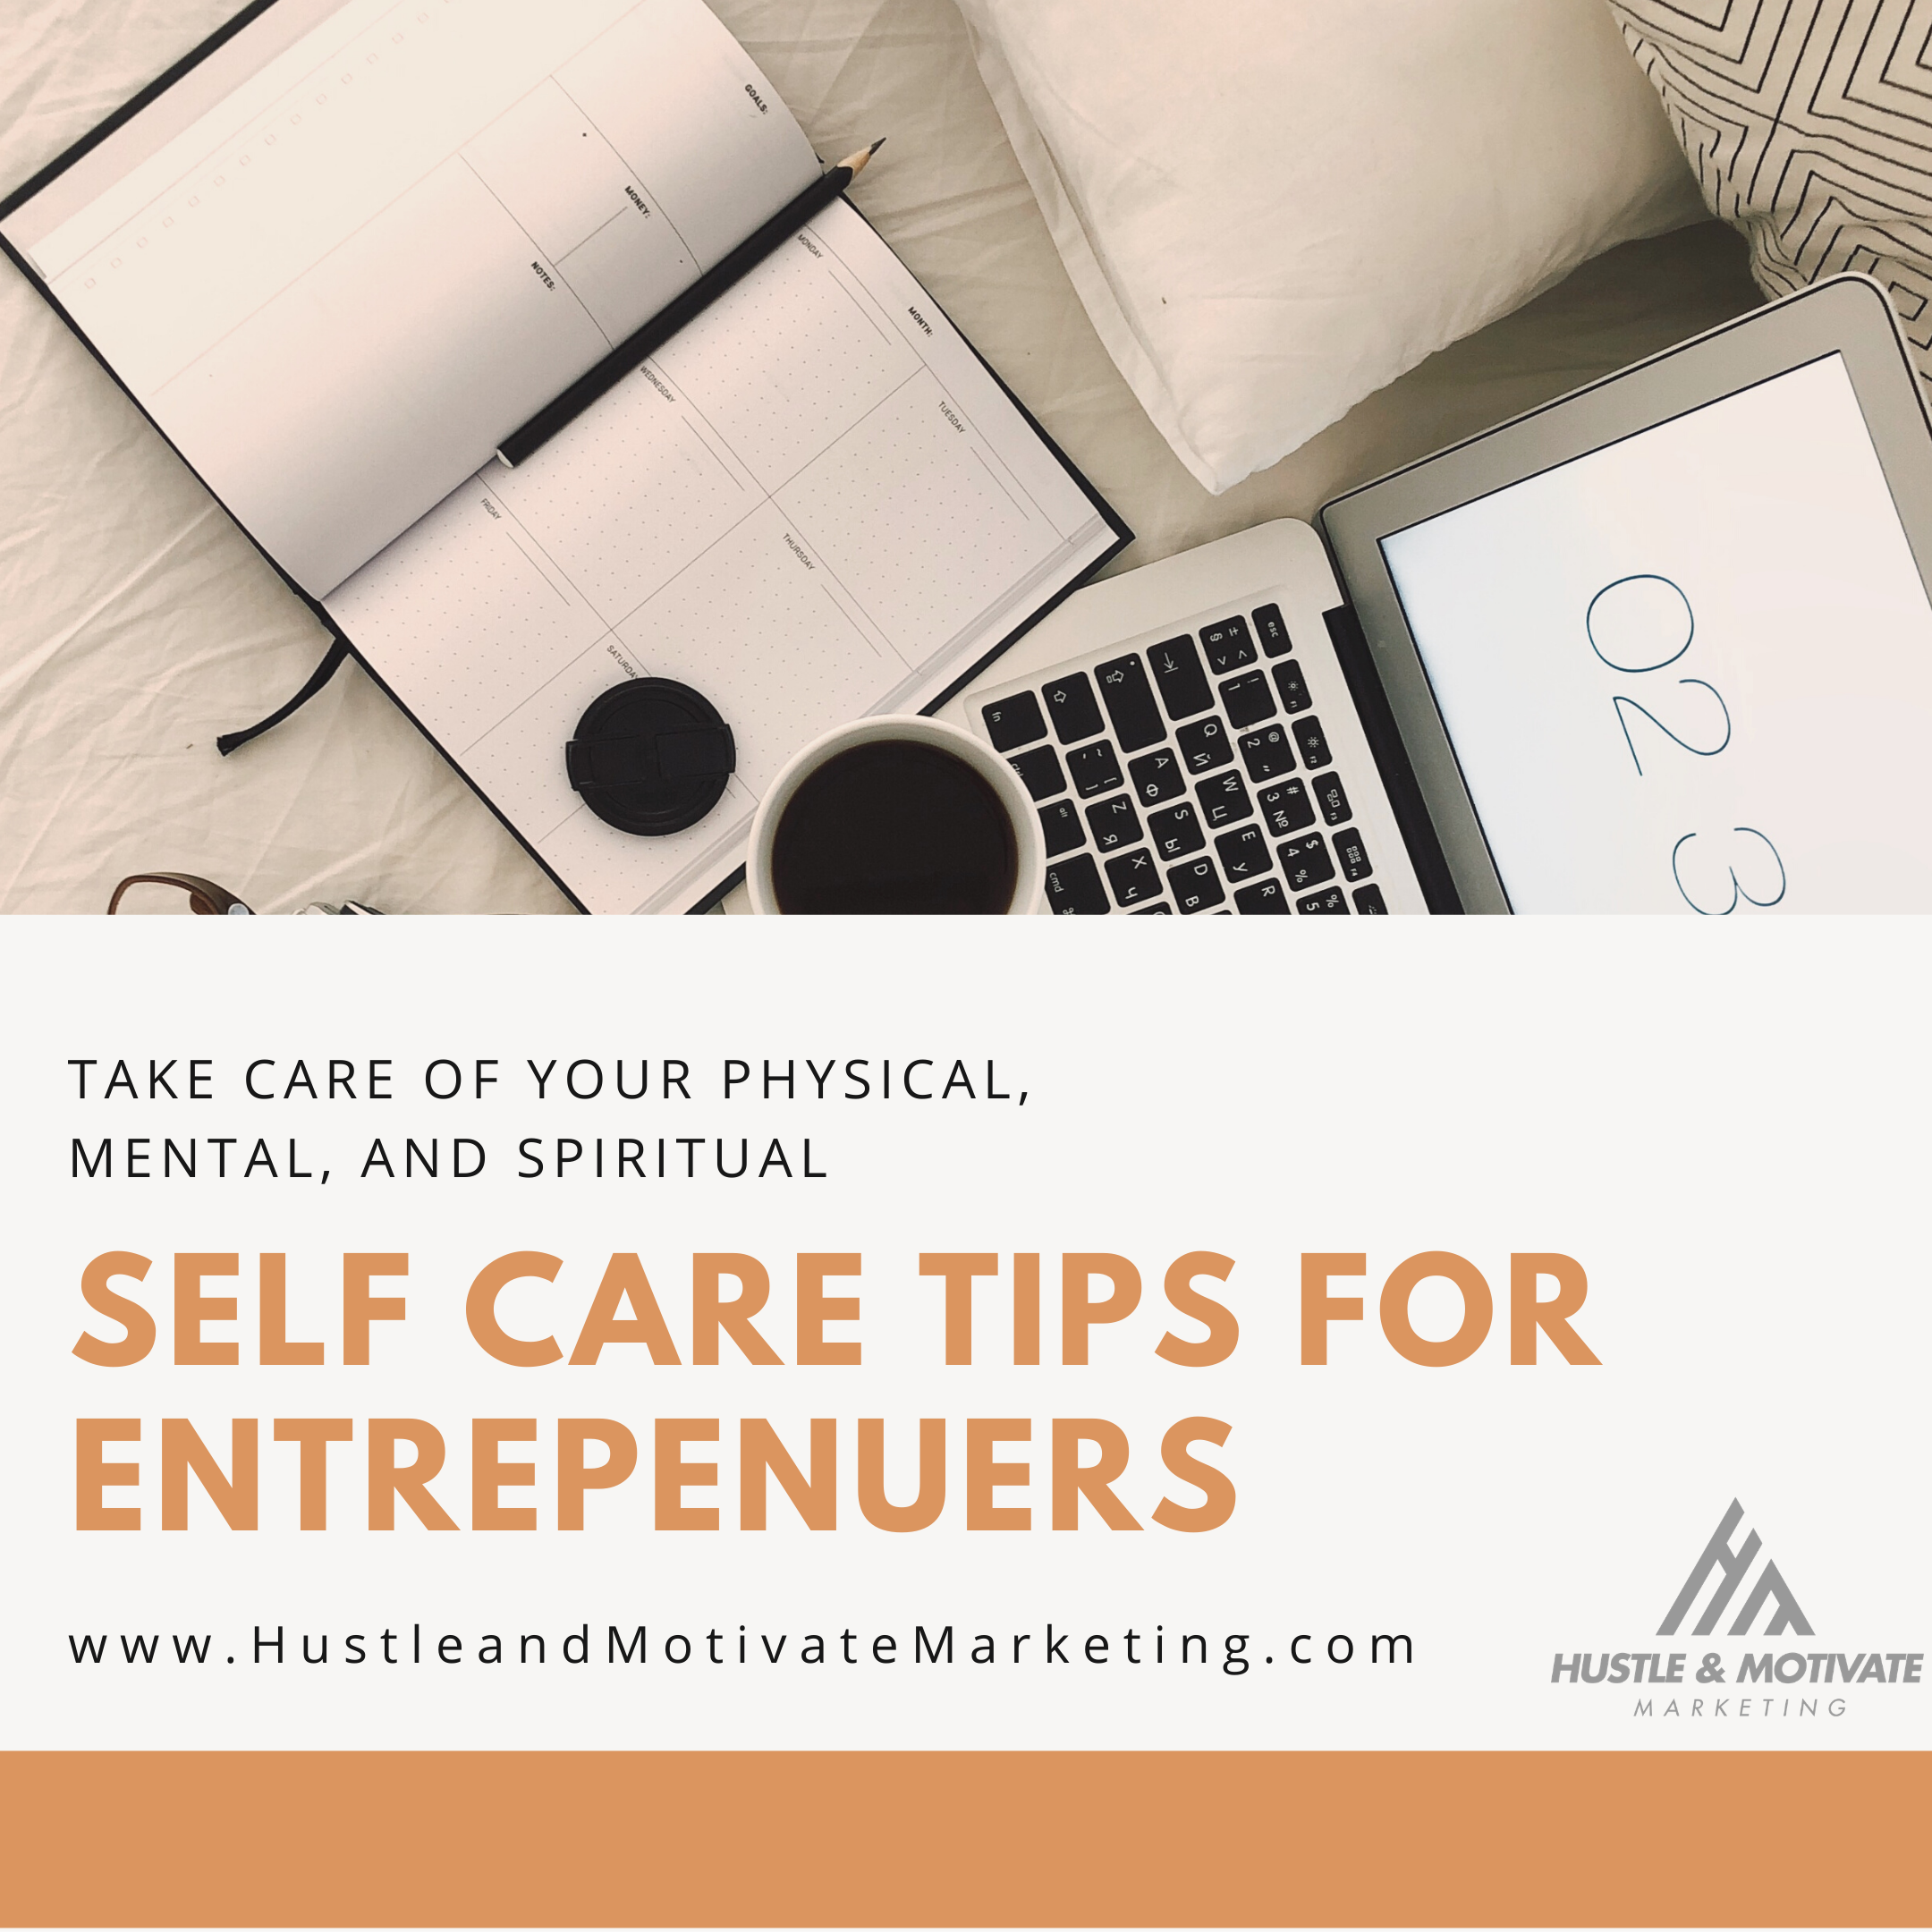 Self Care Tips For Entrepreneurs